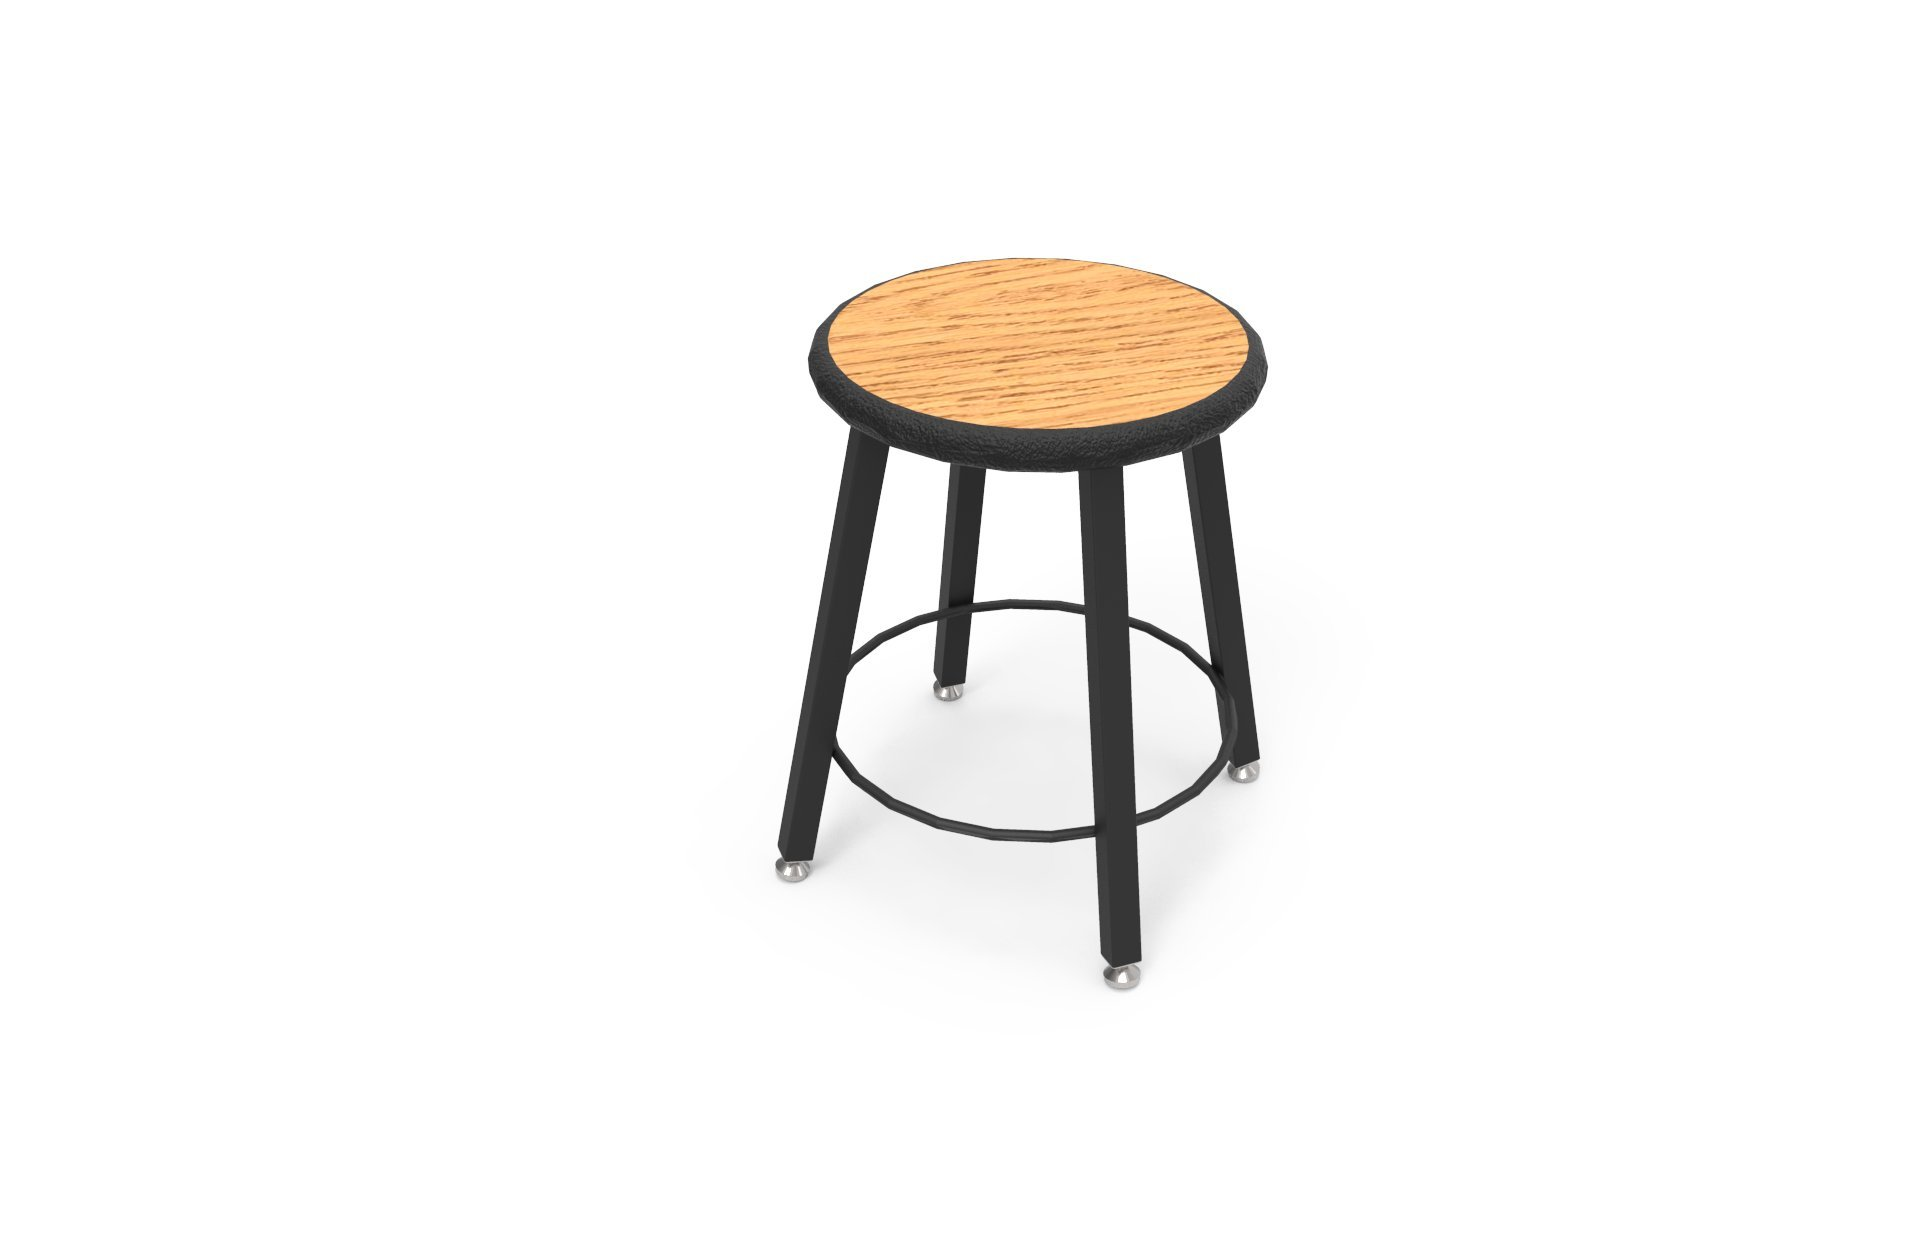 STL7186-AF-32 18 in. Fixed Four-Legged Square Tube Fully Welded Stool Bannister Oak Laminate - Lotz Armor Edge Seat